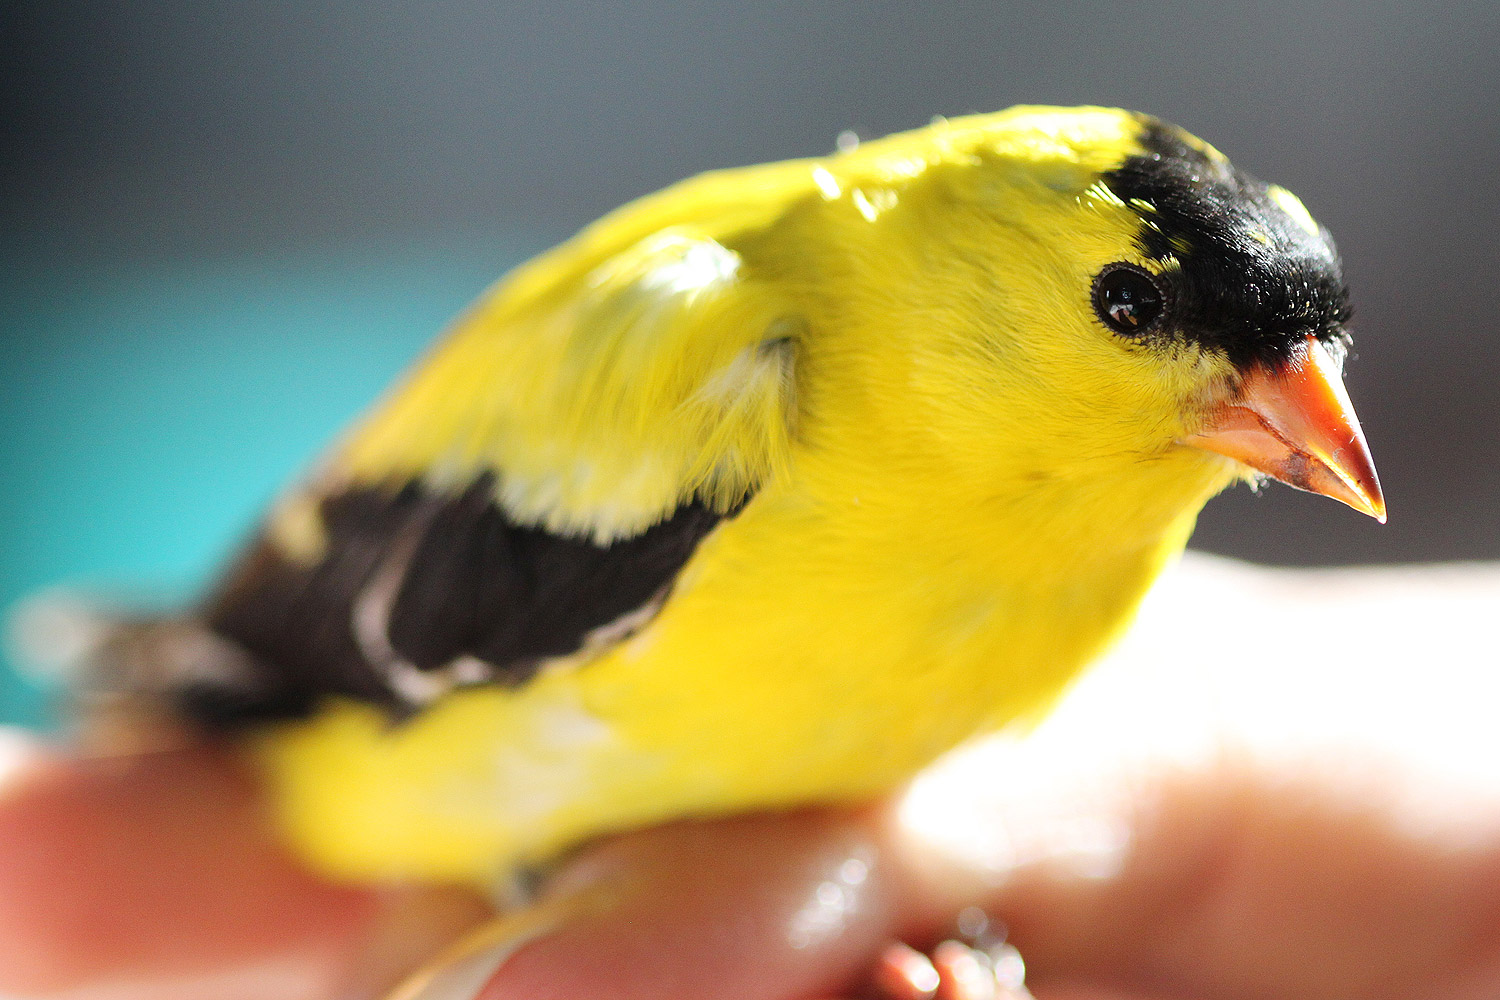 Untangled from the net, the goldfinch is ready for the banding process.